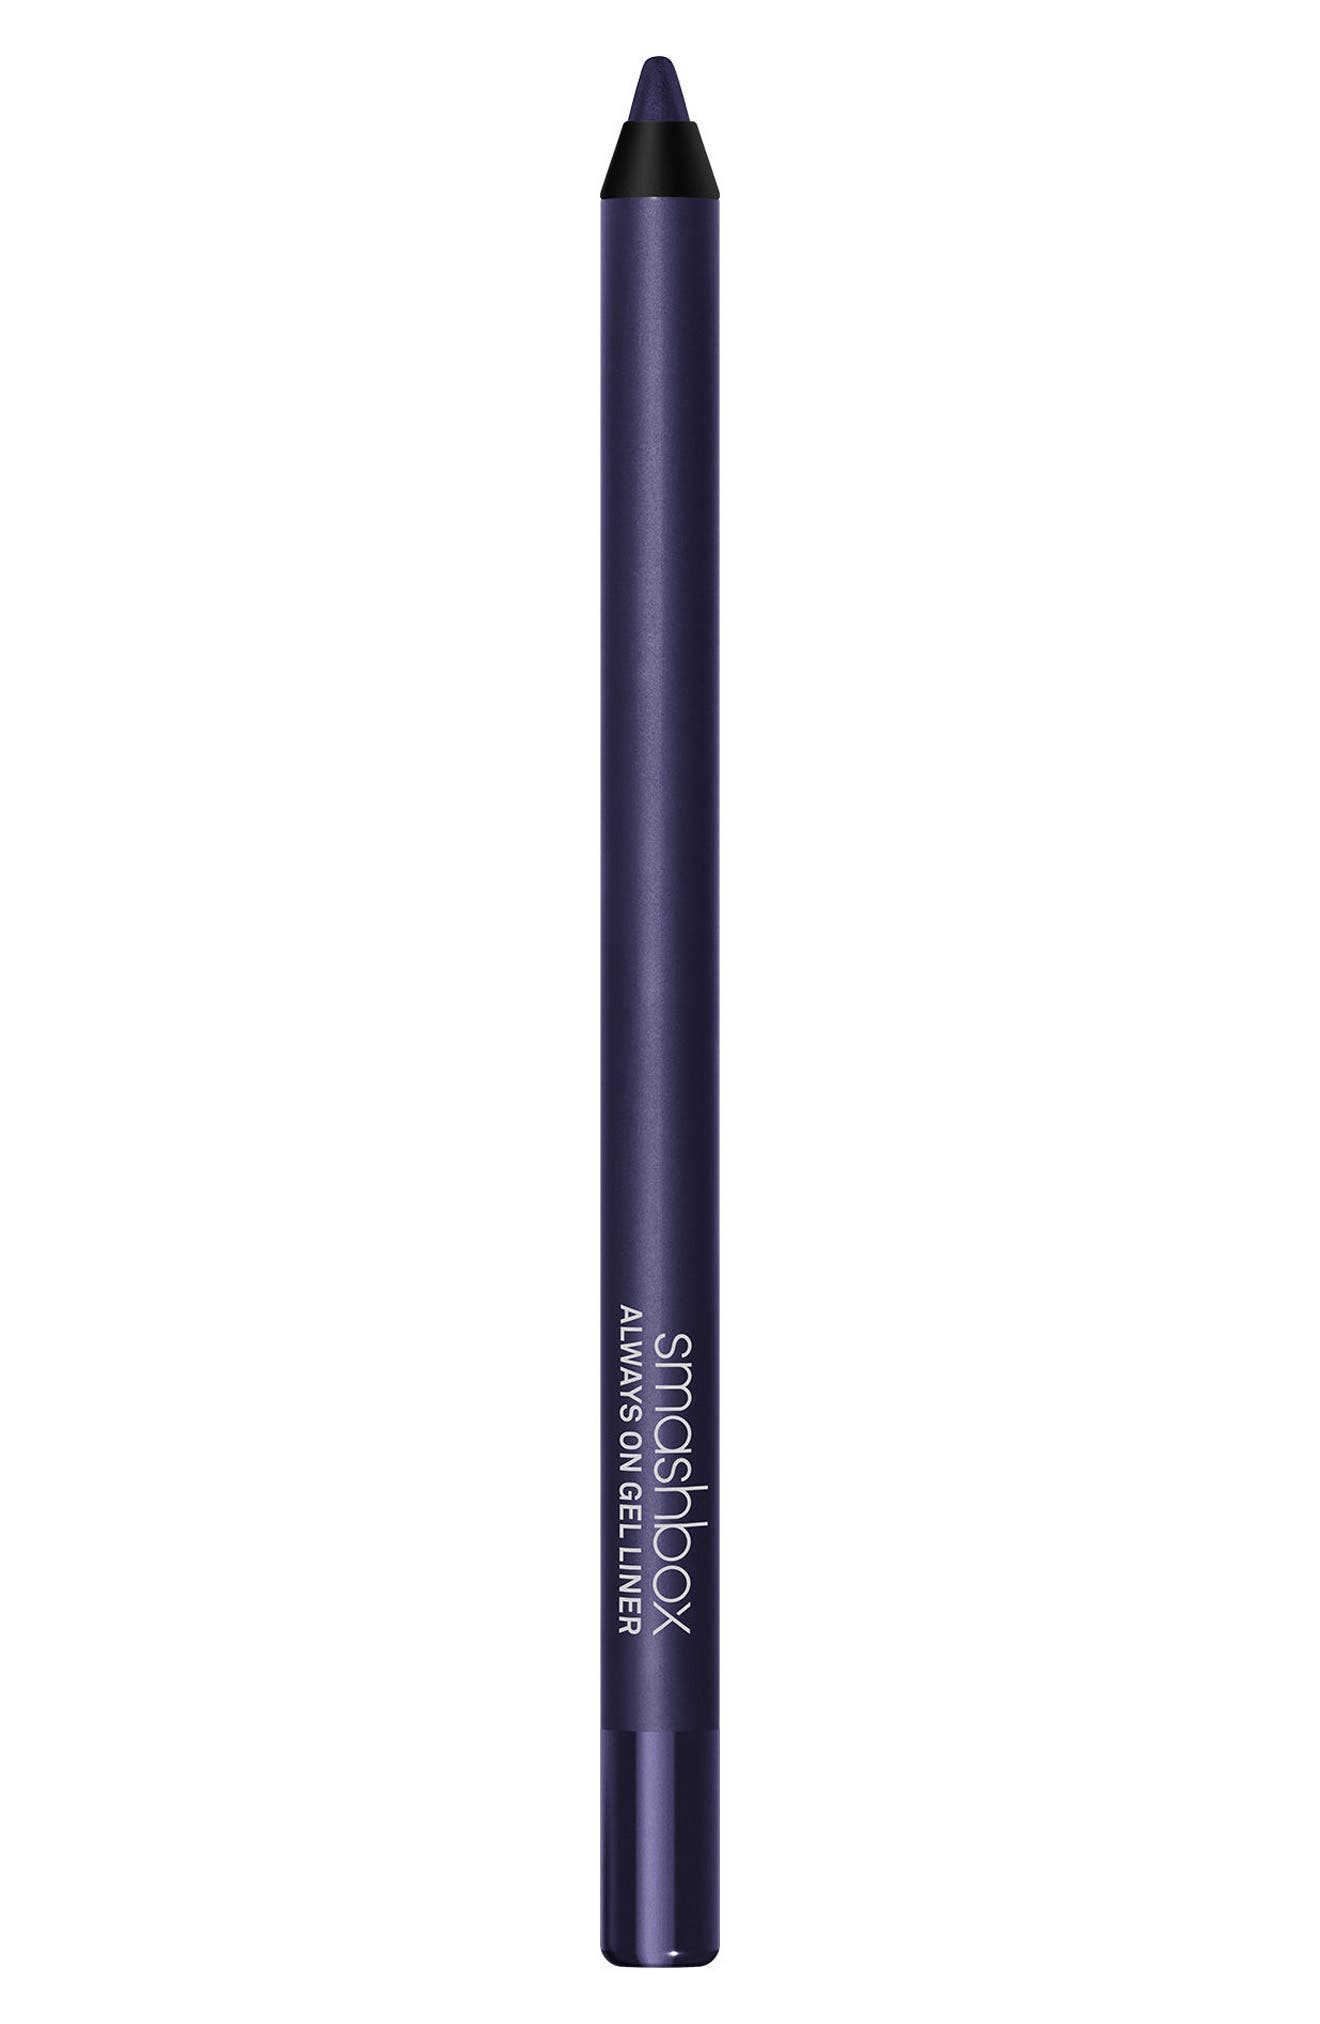 Smashbox Always On Gel Eyeliner